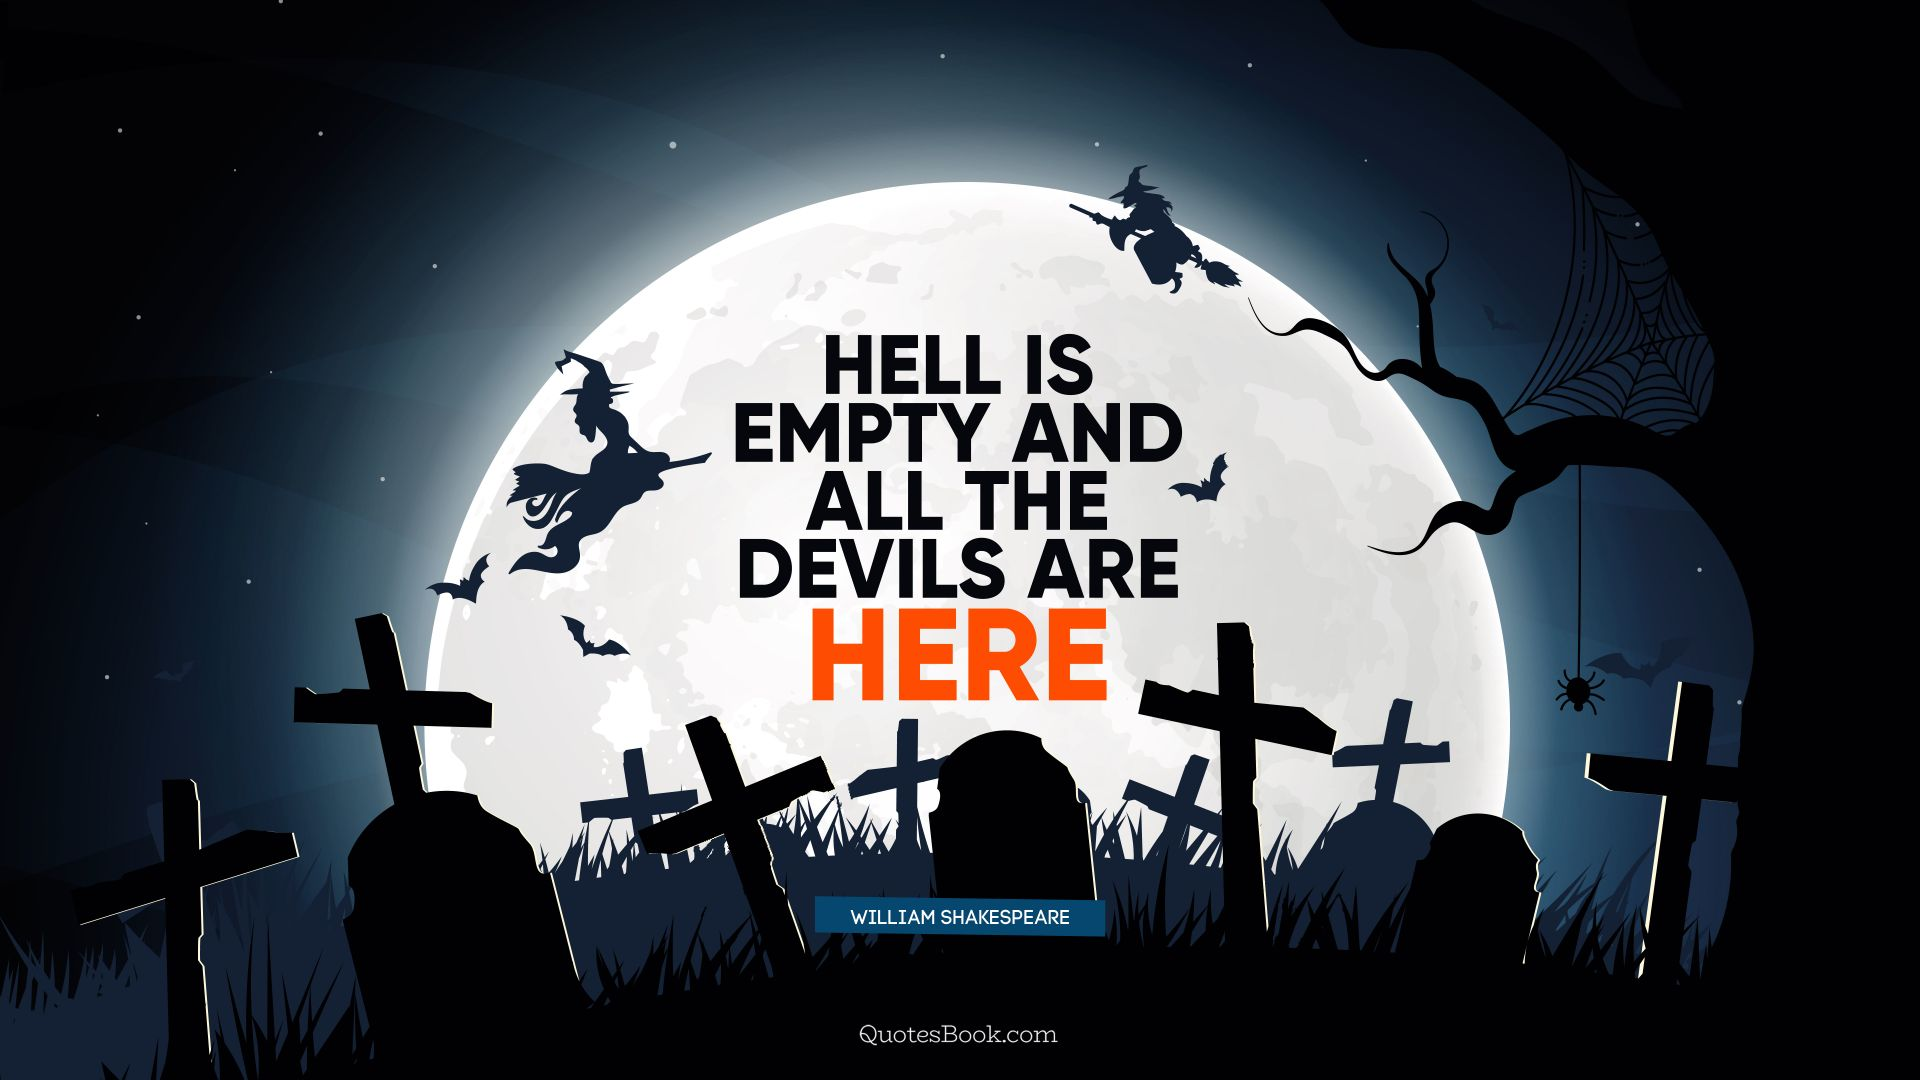 Hell is empty and all the devils are here. - Quote by William Shakespeare